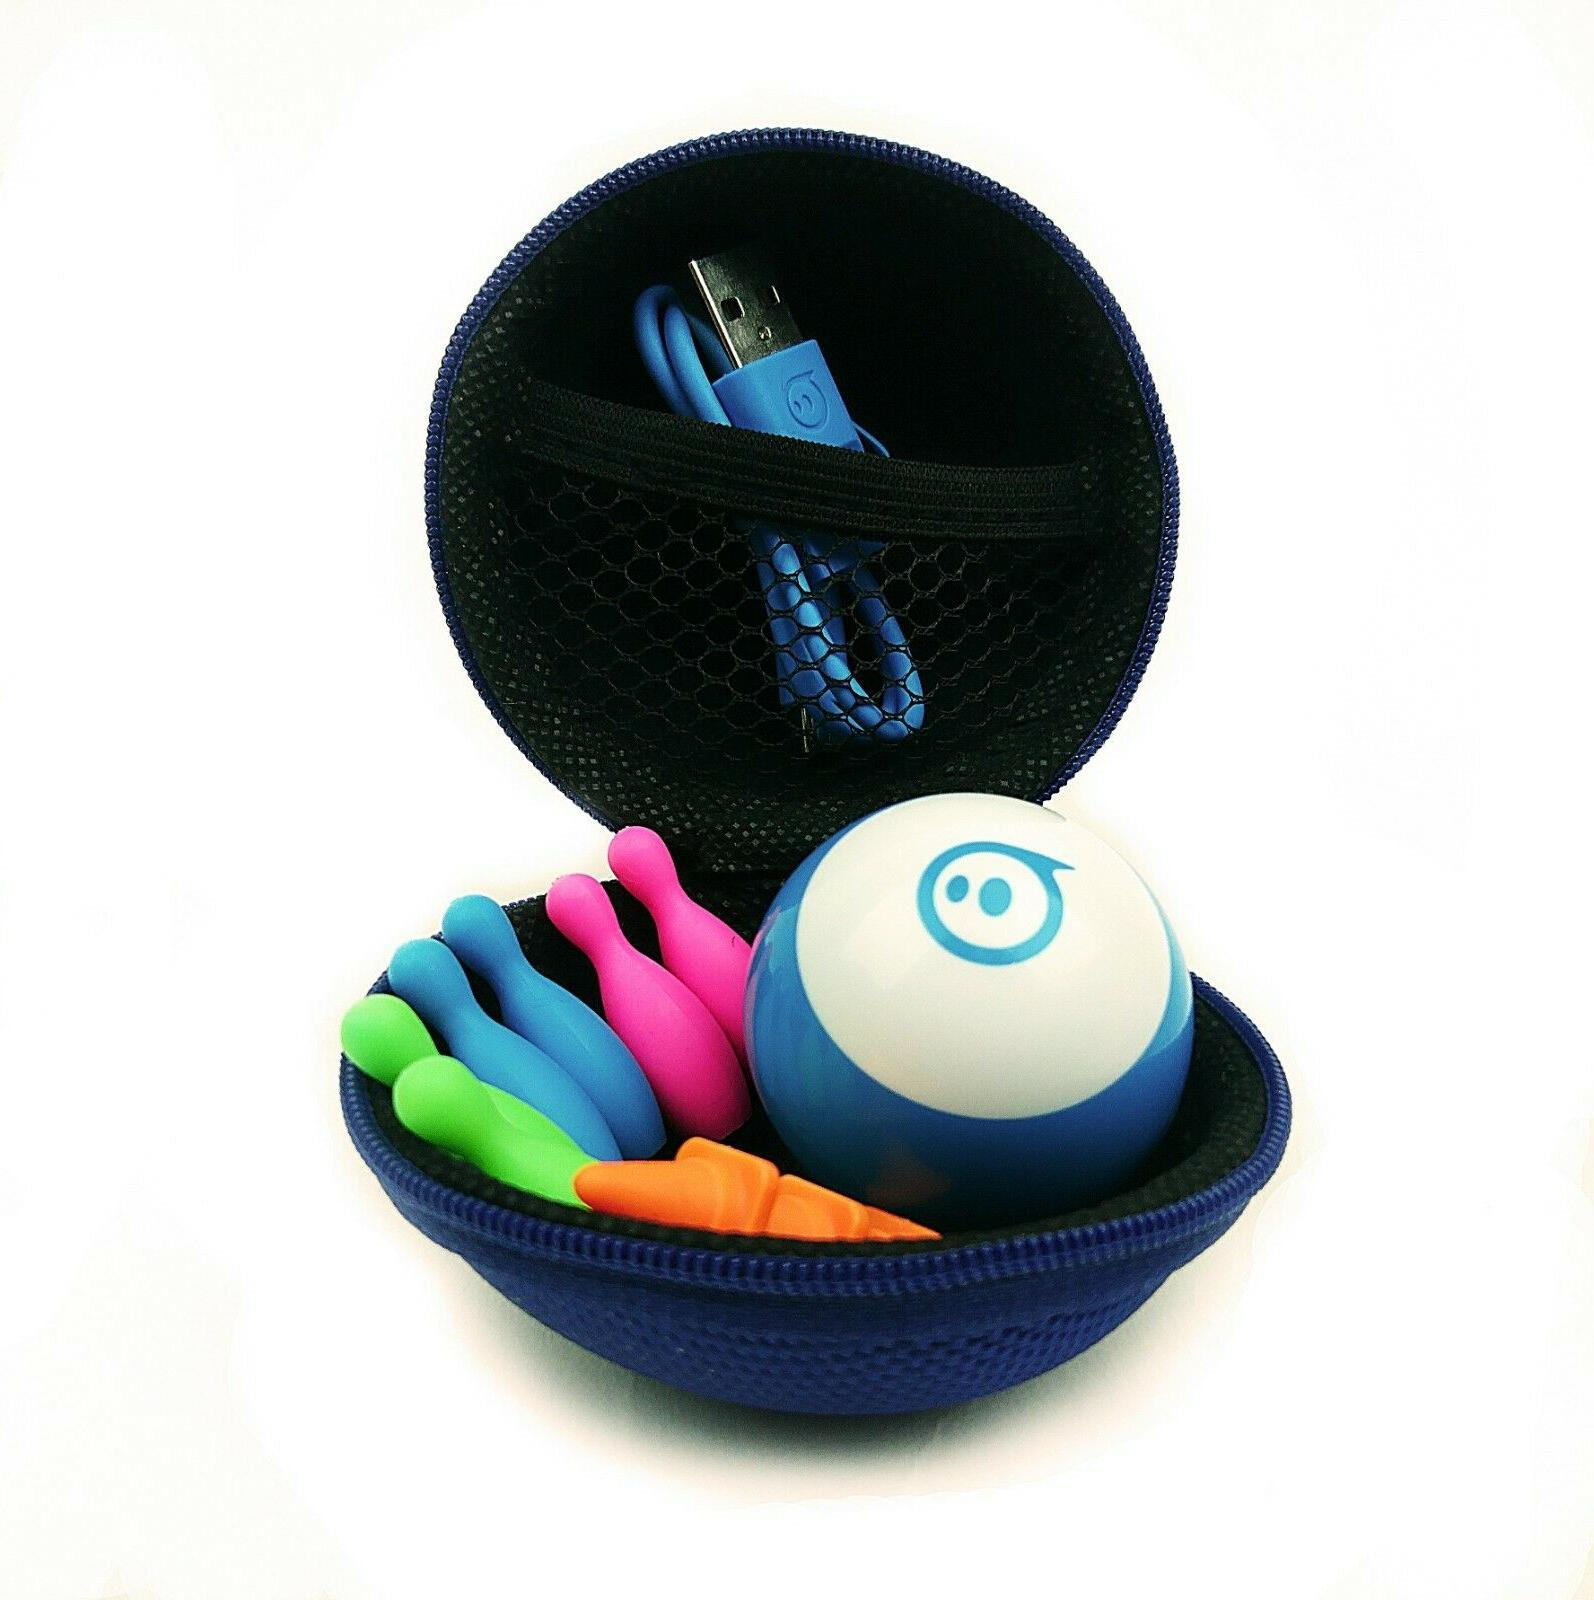 Sphero Carry Case and